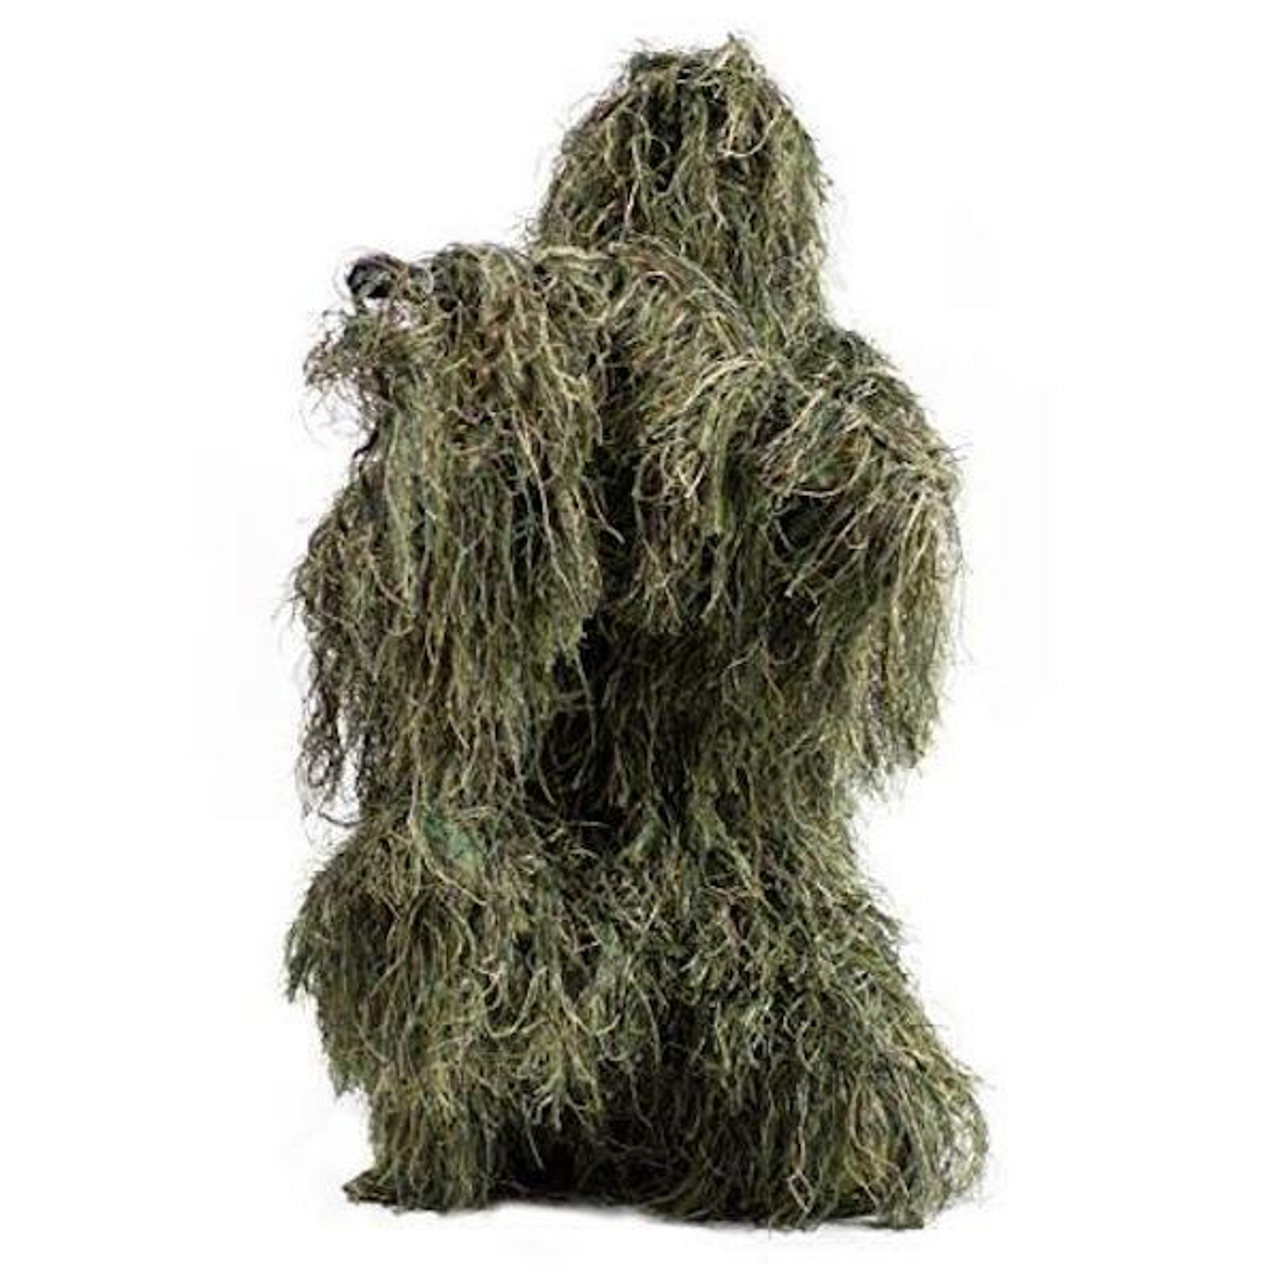 Youth Camouflage Ghillie Suit 5ive Star Gear 3691